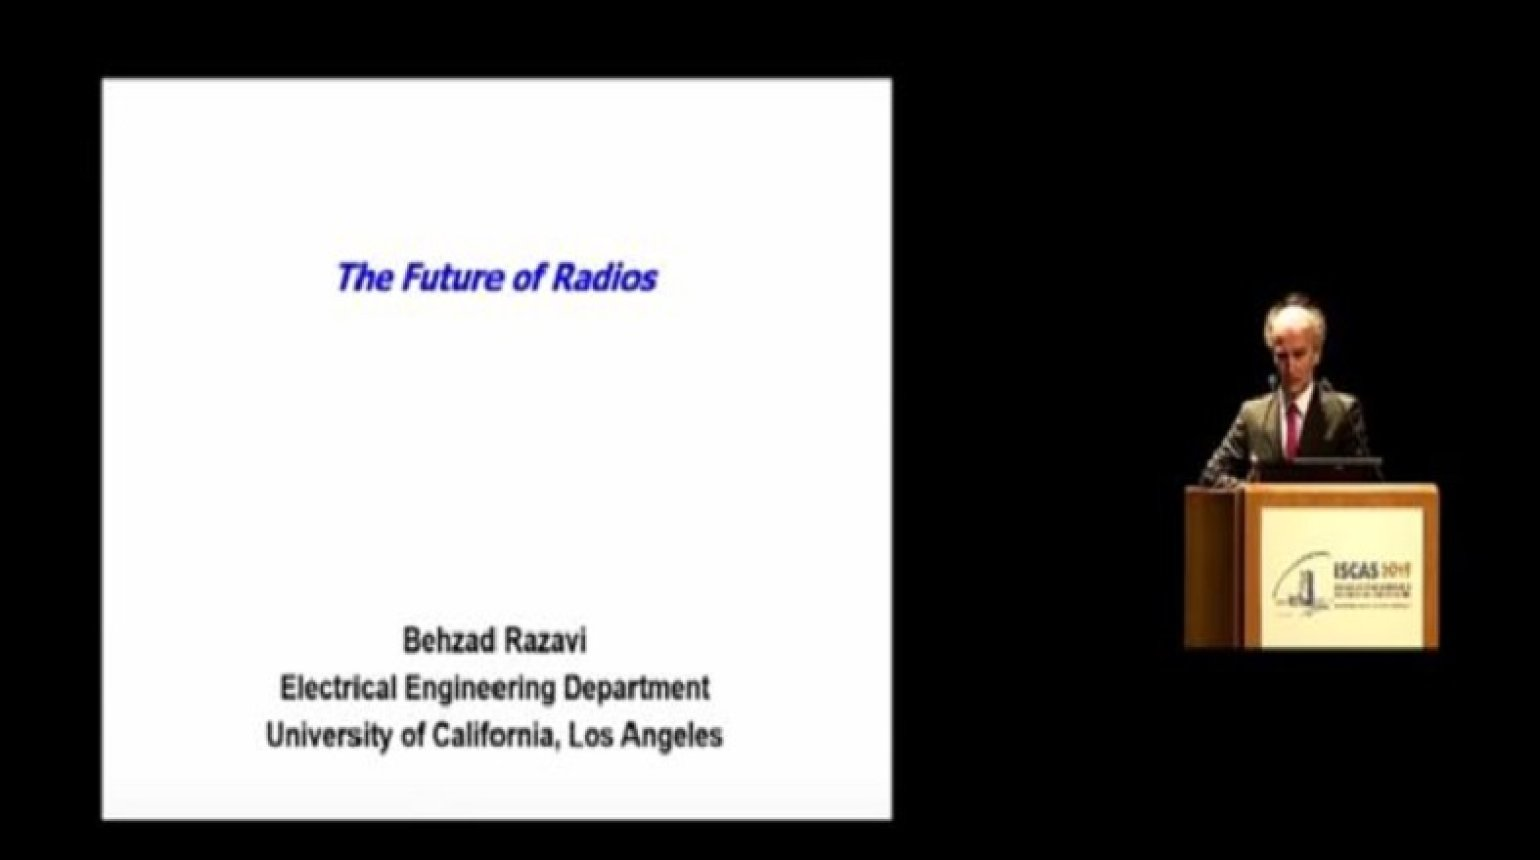 The Future of Radios